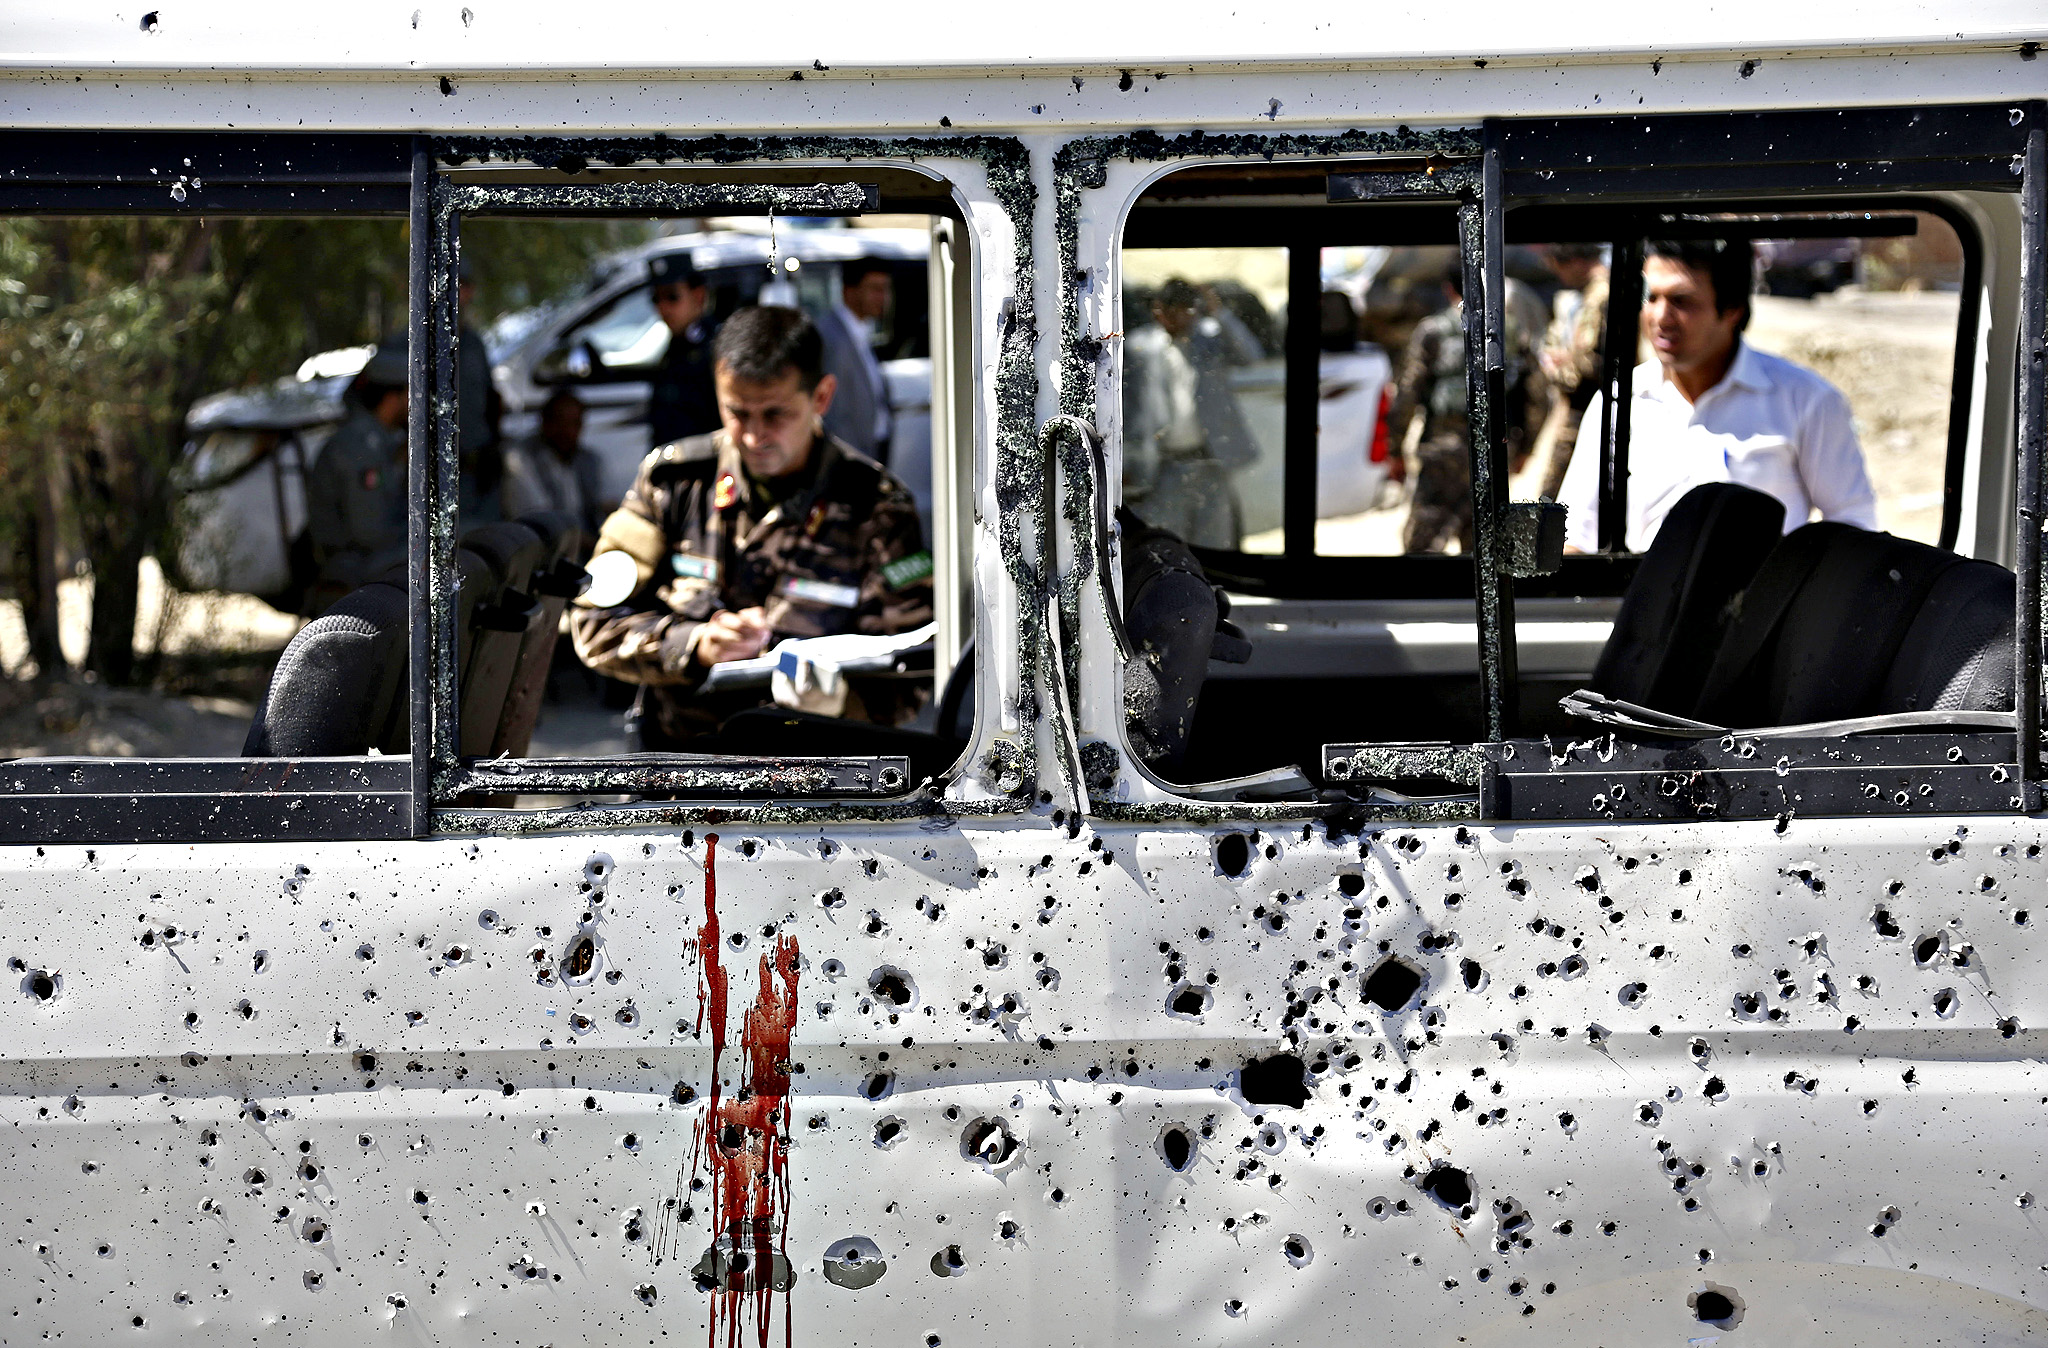 Afghan security personnel investigate a damaged minivan which was hit by a remote controlled bomb on the outskirts of Kabul, Afghanistan, Tuesday, July 15, 2014. Gul Agha Hashimi, the chief of criminal investigations with the Kabul police, said the explosion struck the minivan carrying seven staffers of the palace's media office on Tuesday morning. The blast killed two passengers and also wounded five people, including the driver.